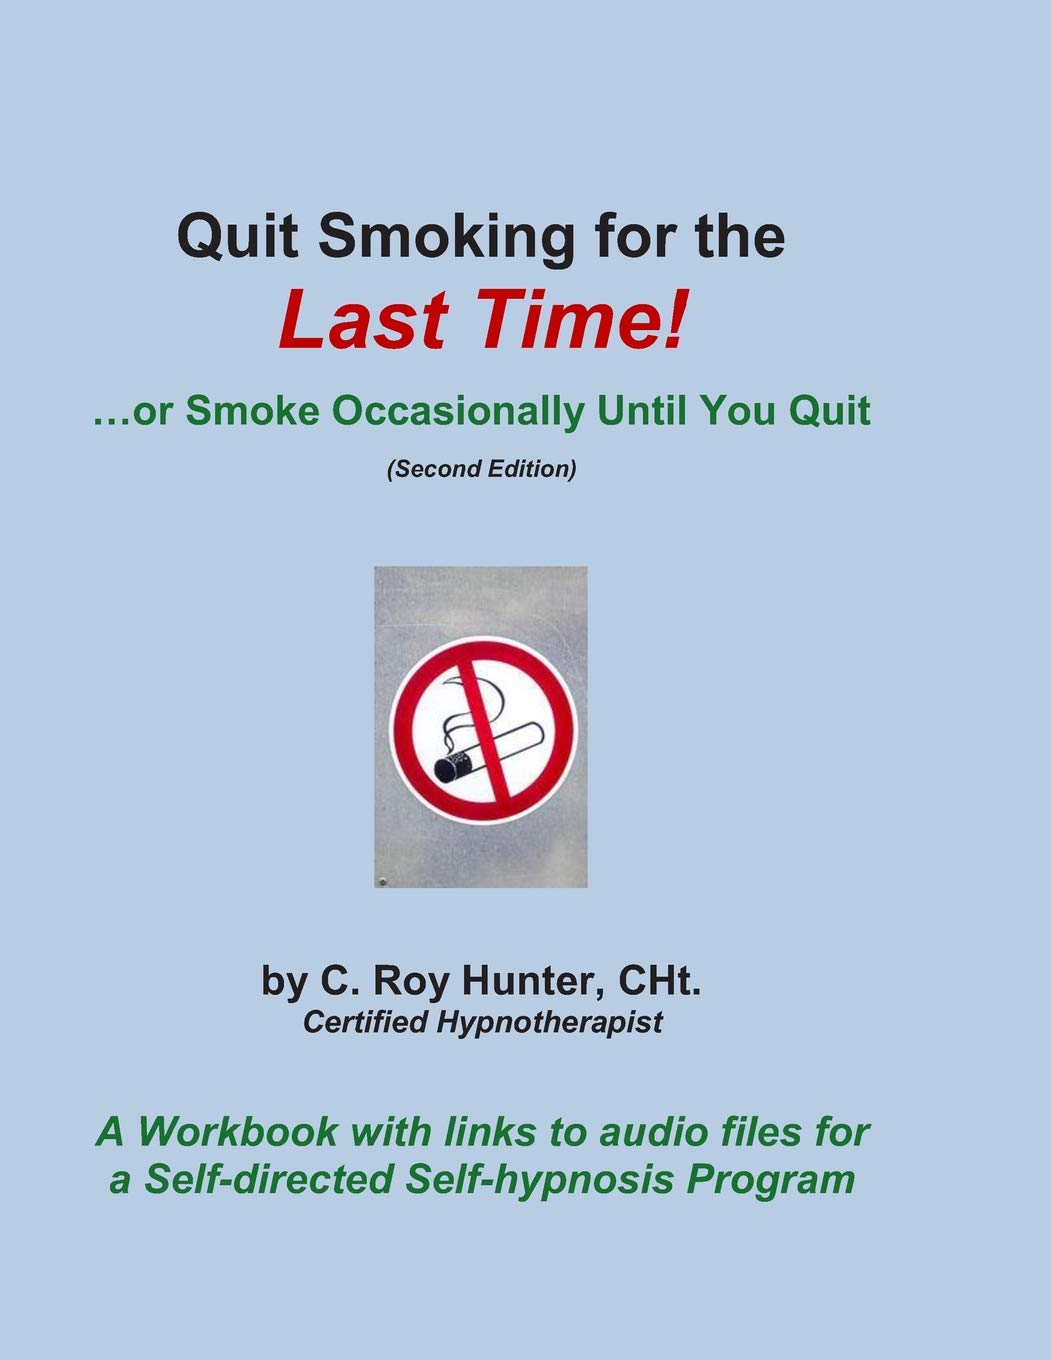 Quit Smoking for the Last Time!: ...or Smoke Occasionally Until You Quit